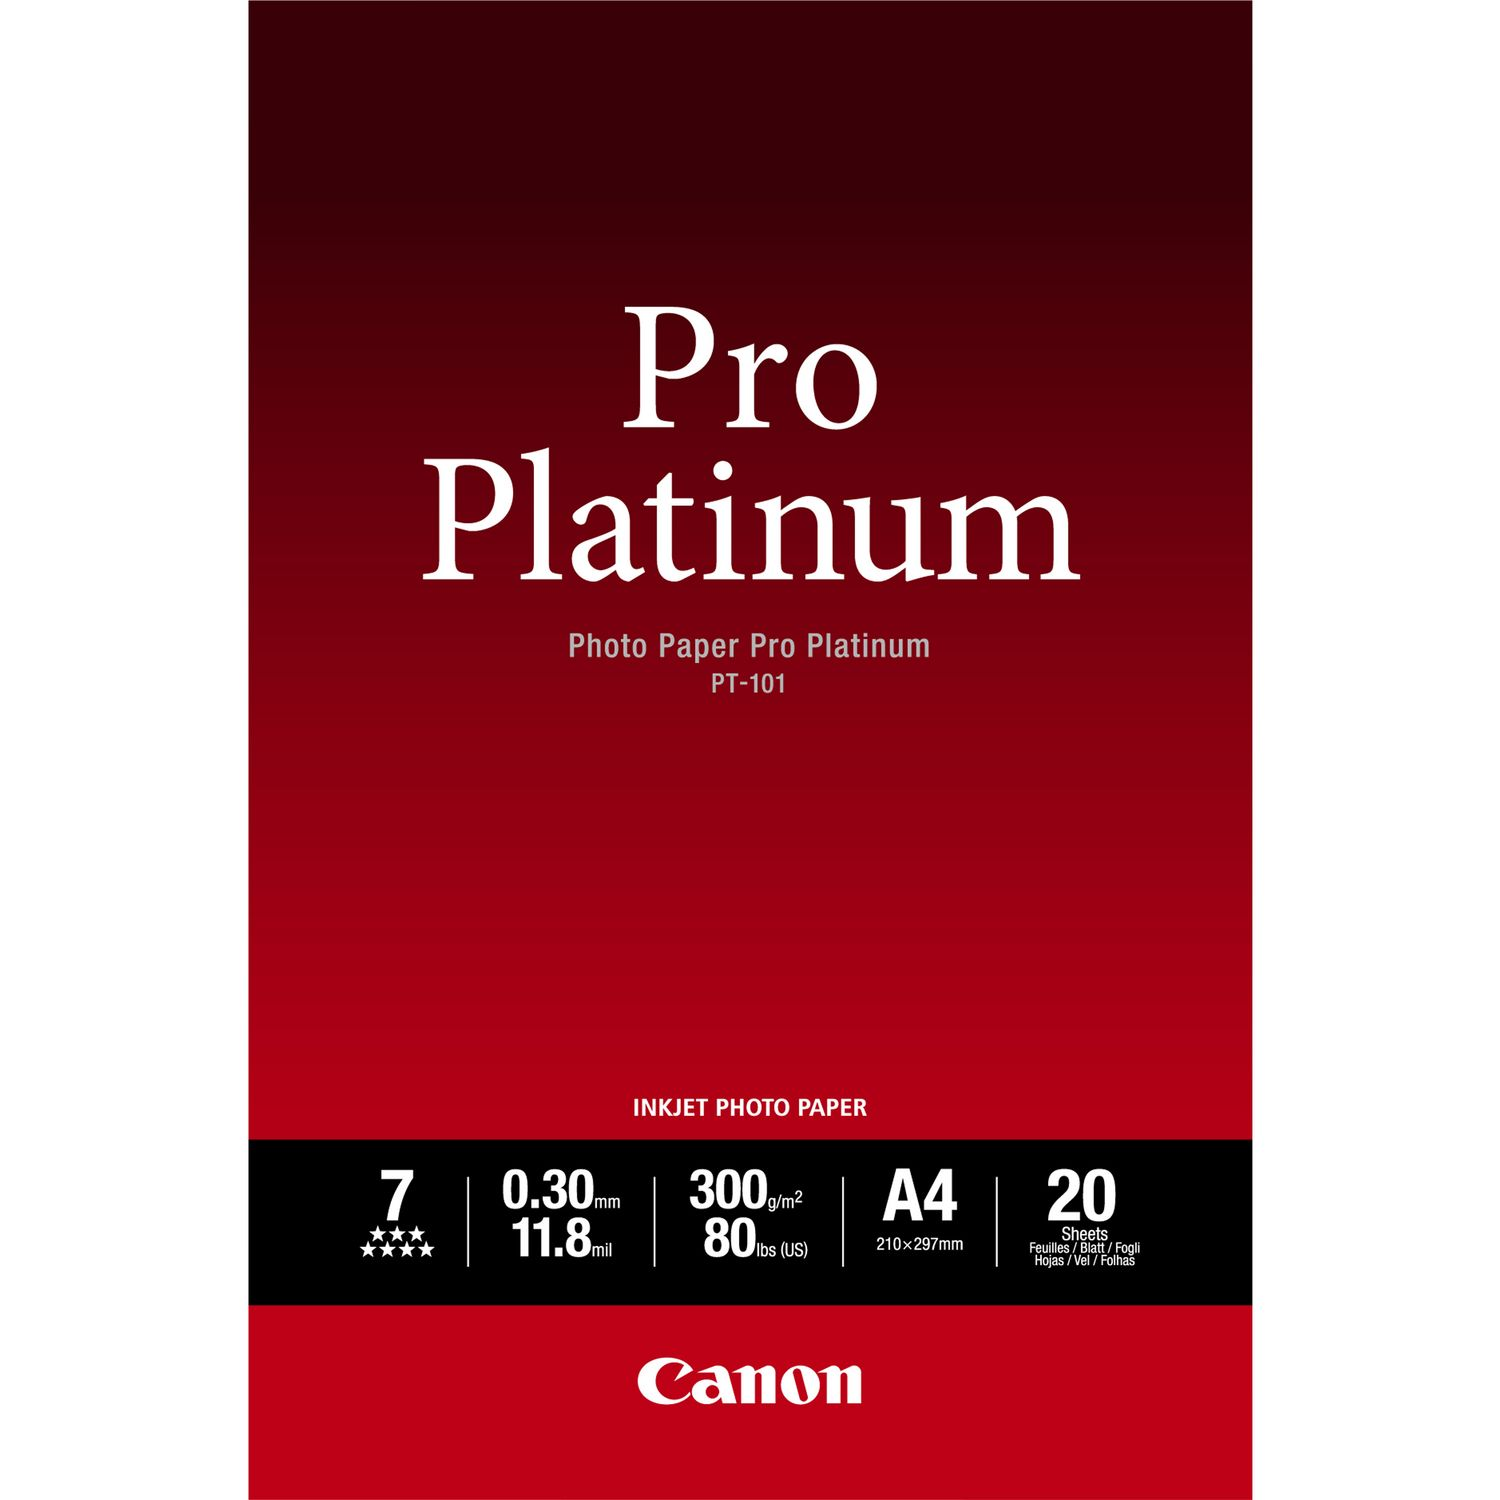 Canon 2768B016 Pro Platinum Photo Paper A4 20 Sheets